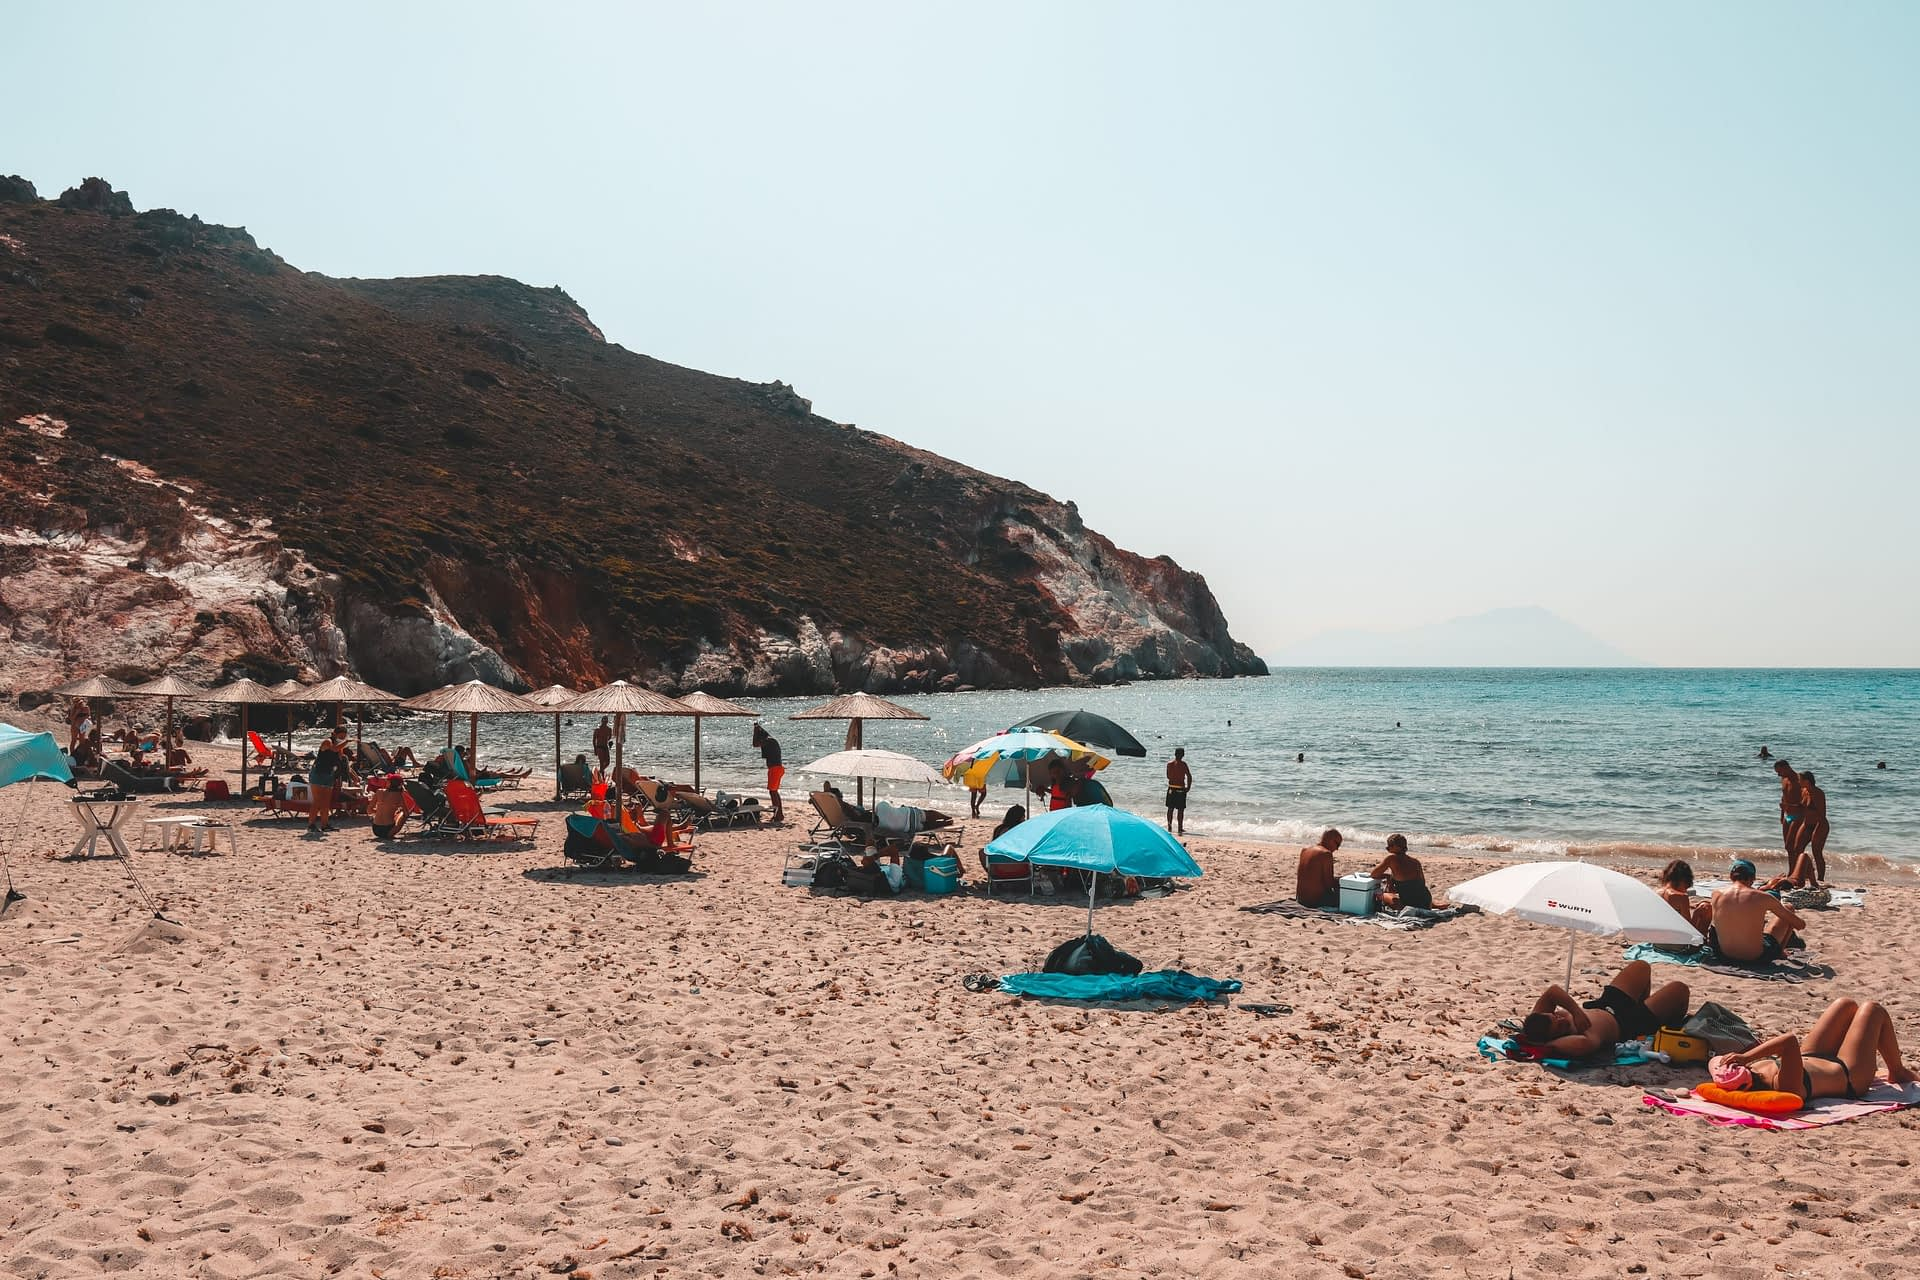 Plathiena beach with parasols. Things to do in Milos